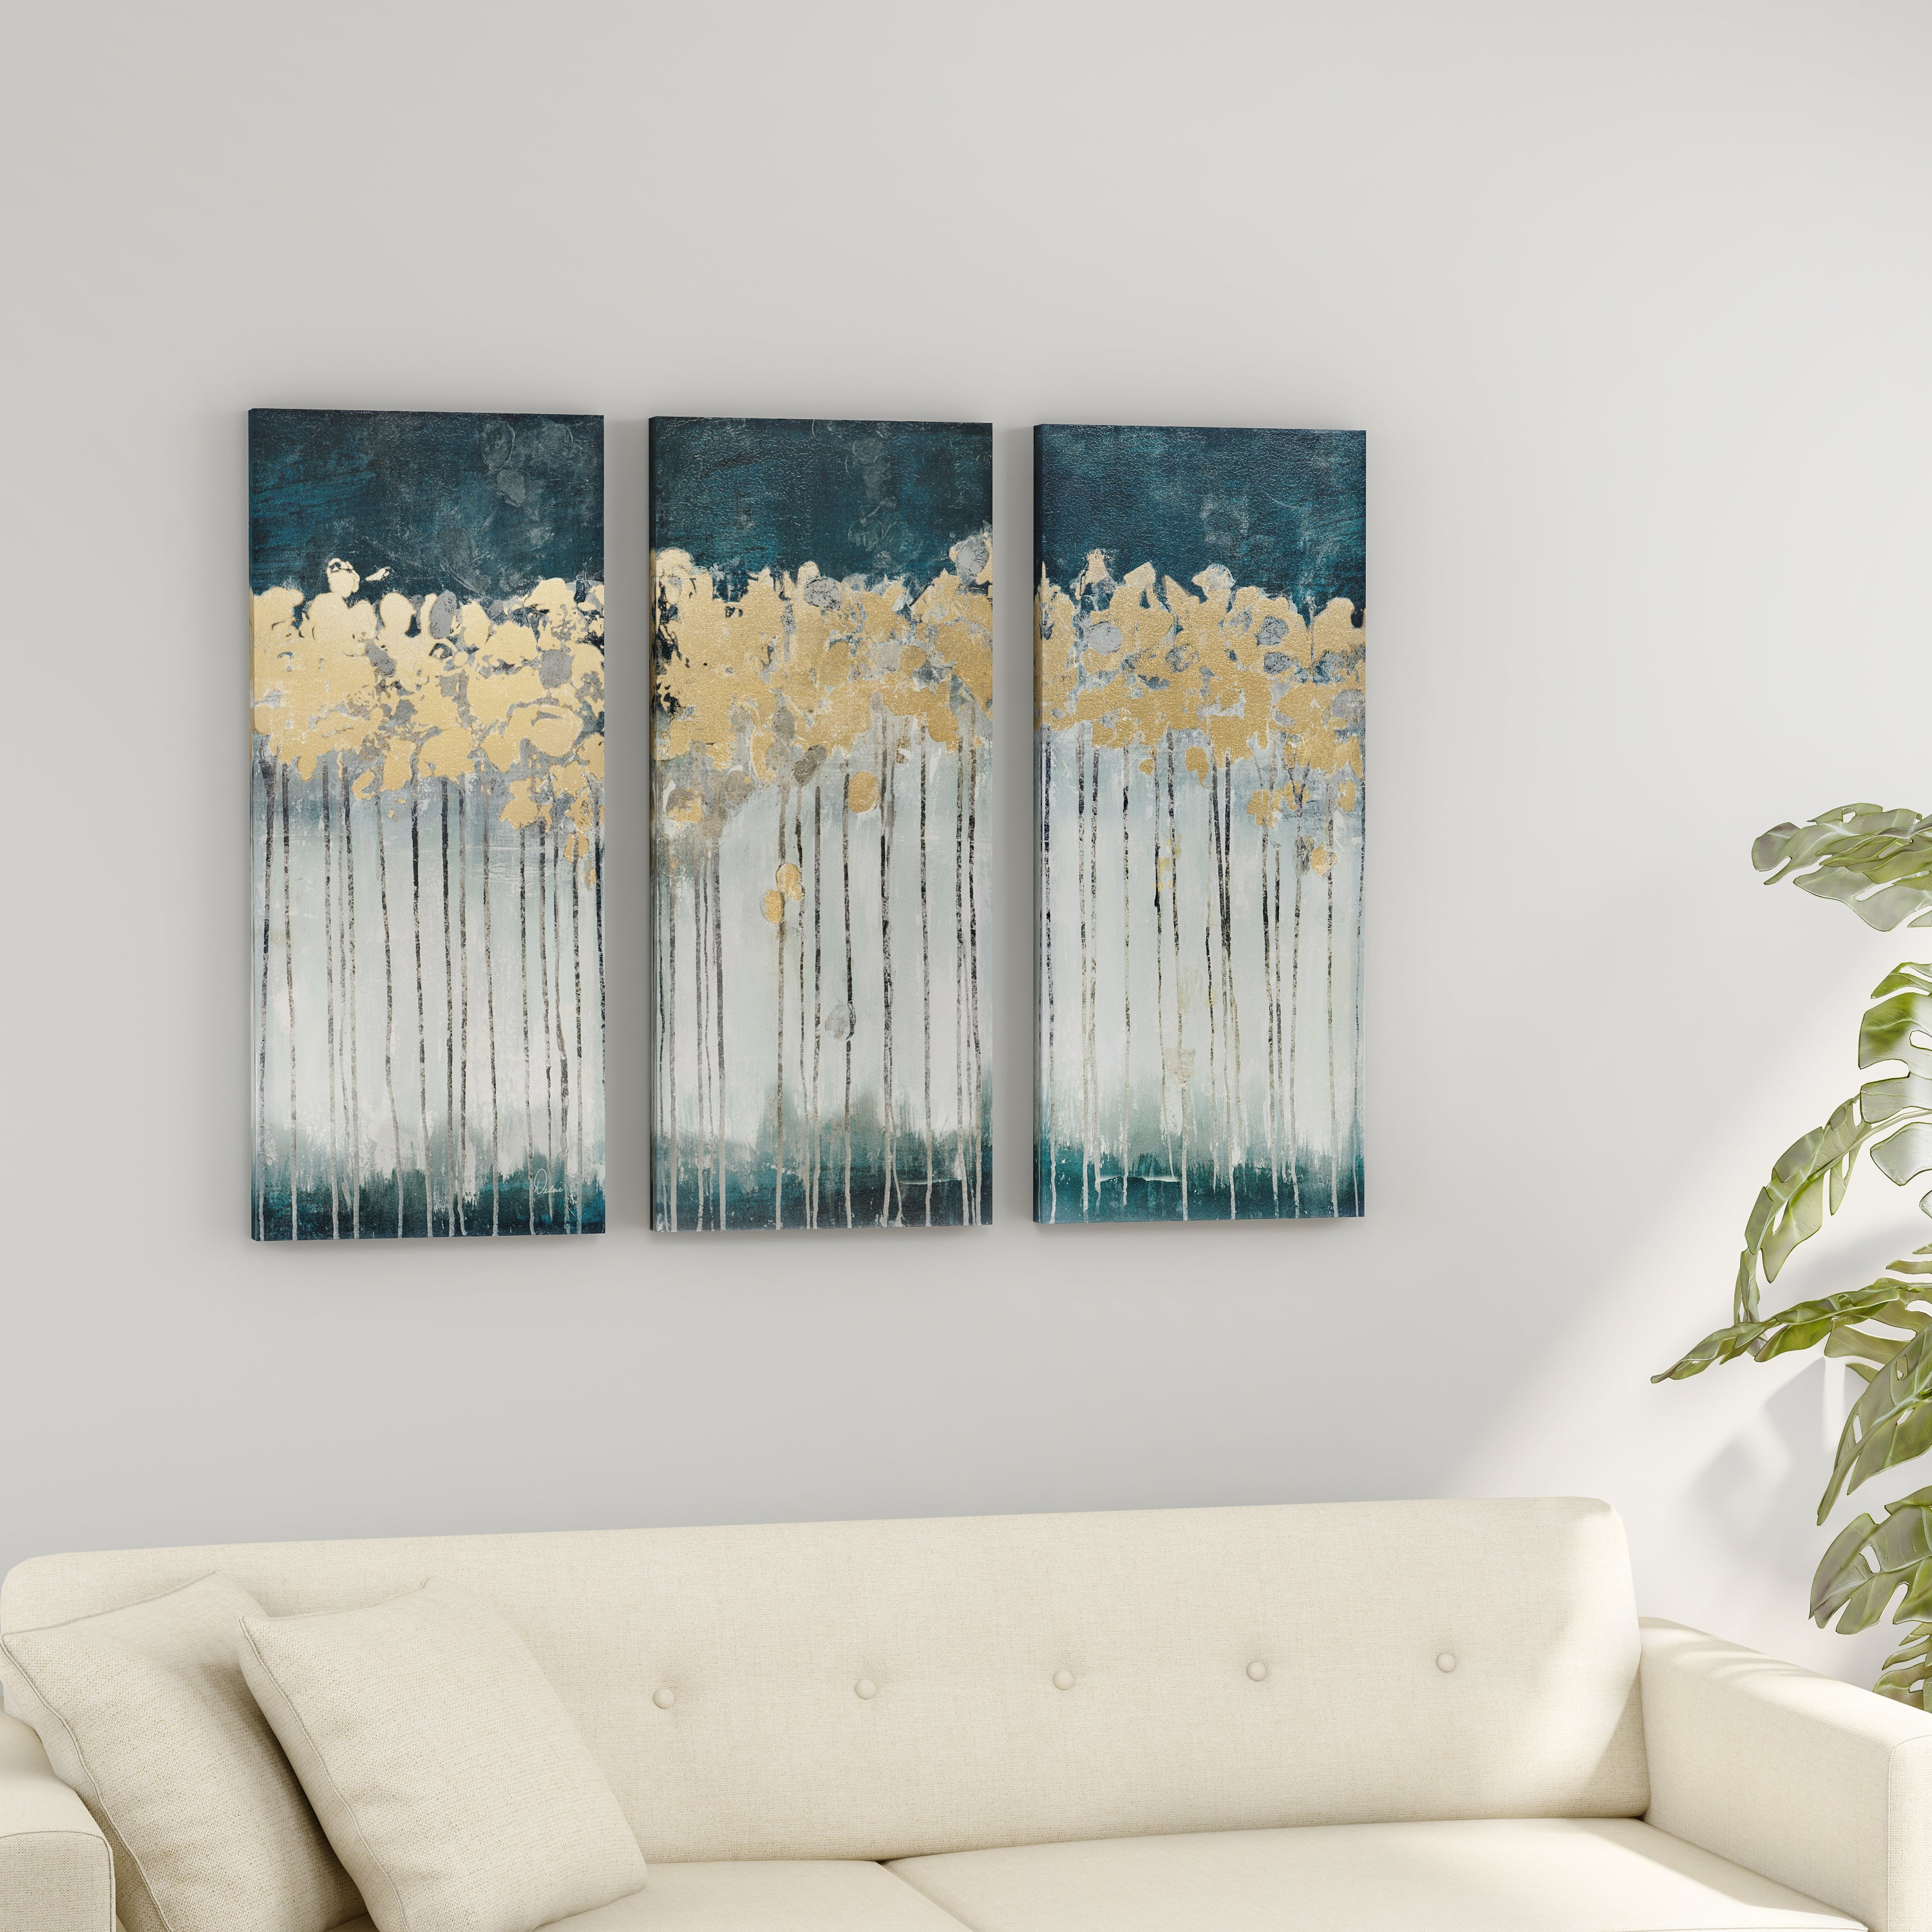 3 Piece Star Wall Decor Sets For Most Popular Matching Sets (View 2 of 20)